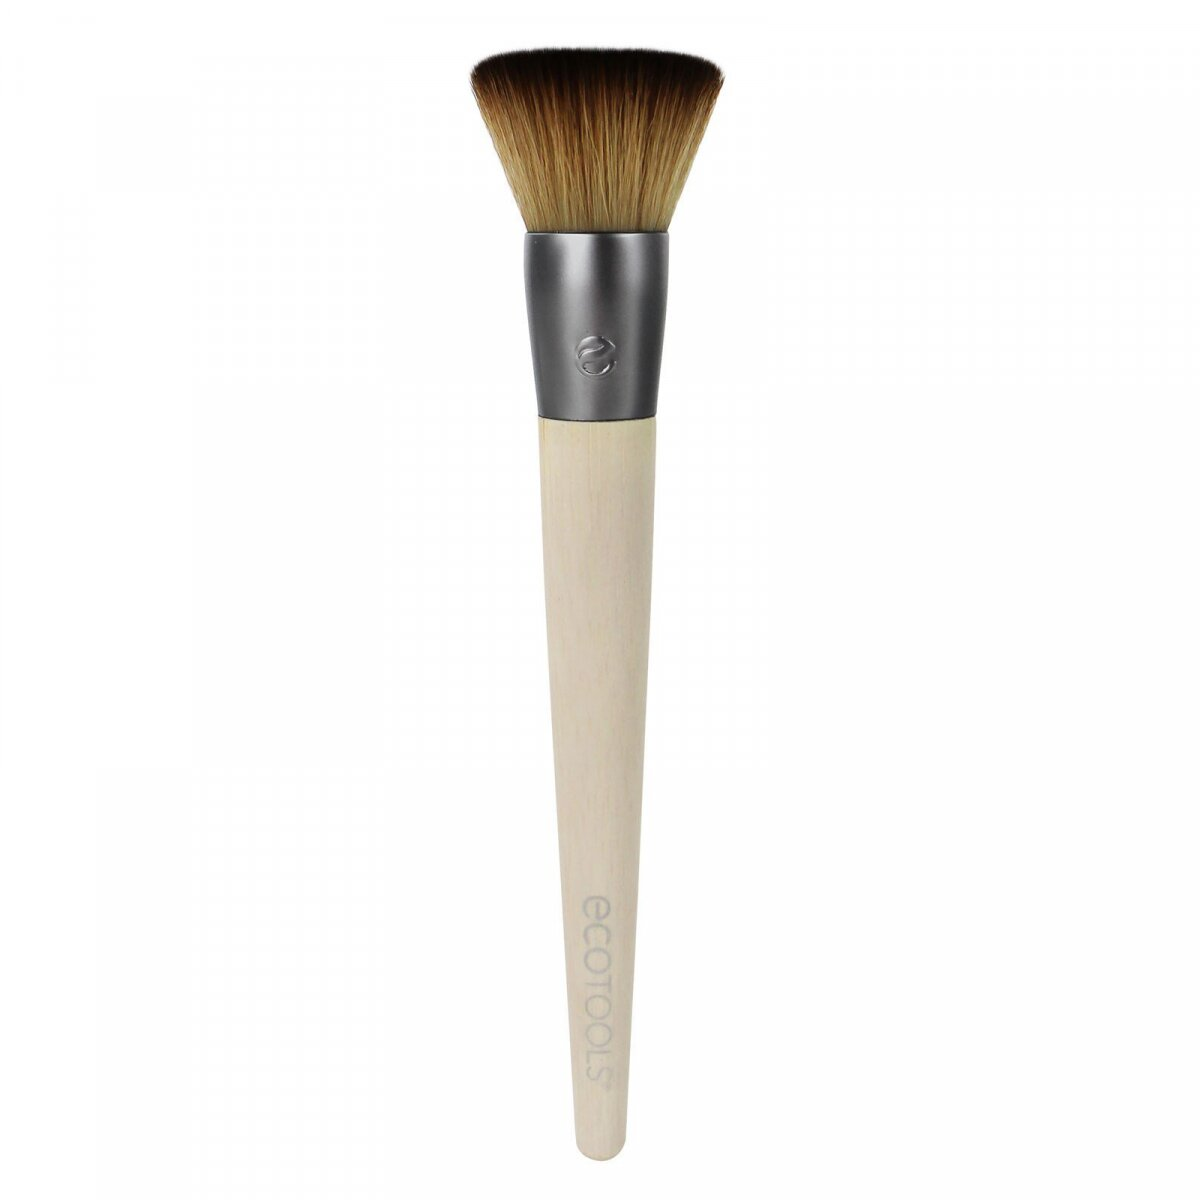 Кисти для лица (финиш), Brush, EcoTools, 1 шт